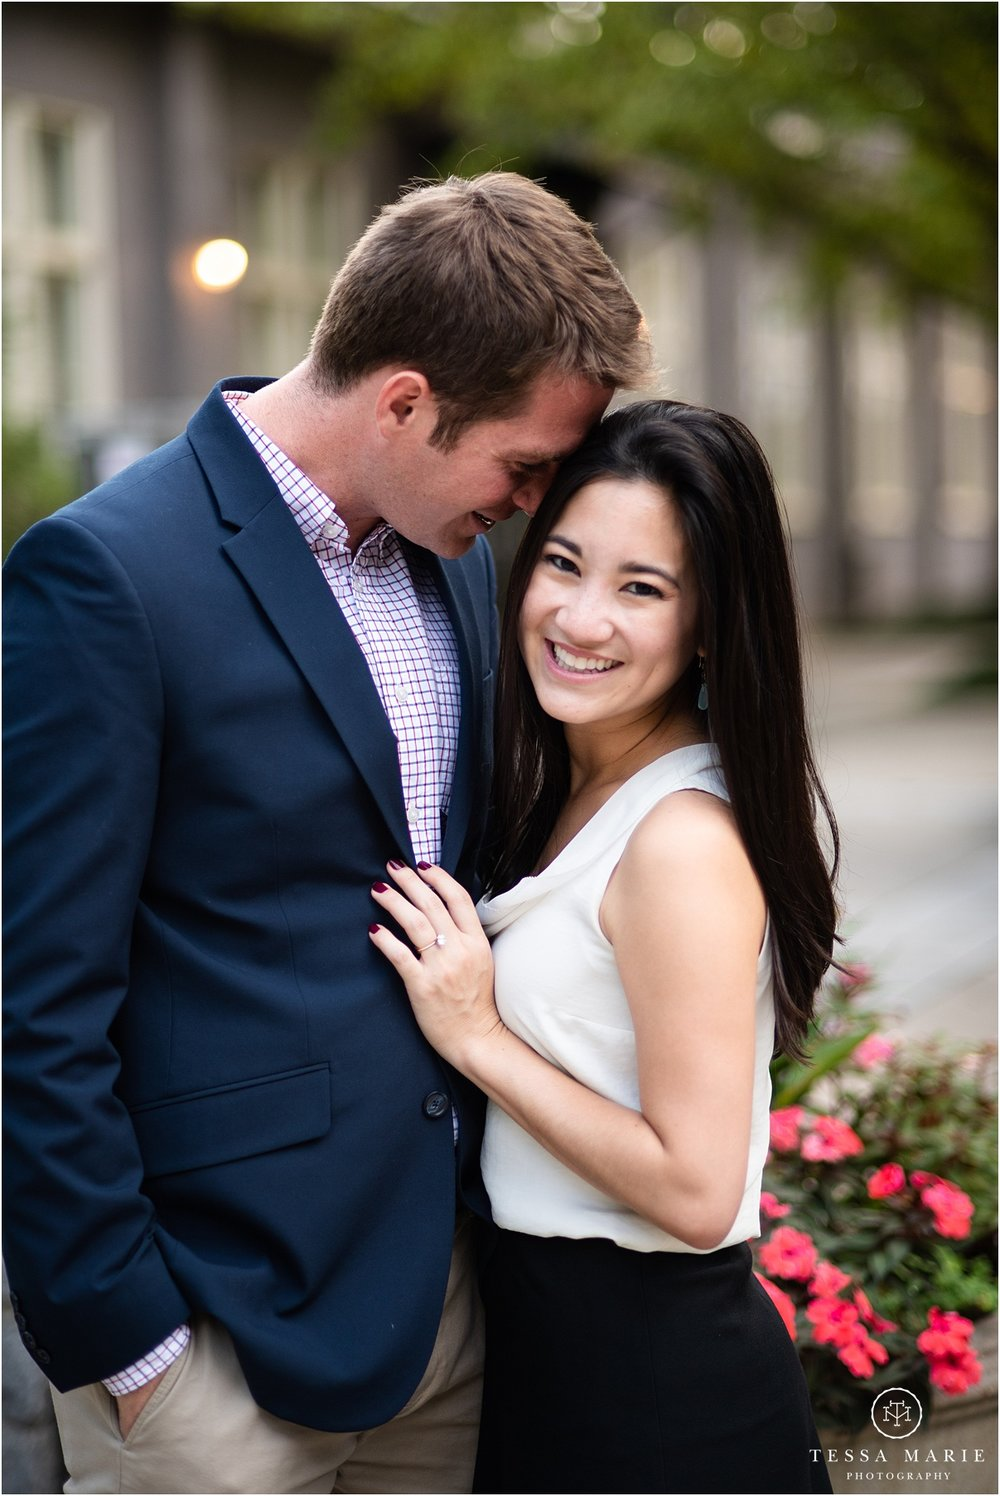 Tessa_marie_photography_wedding_photographer_engagement_pictures_piedmont_park_0059.jpg